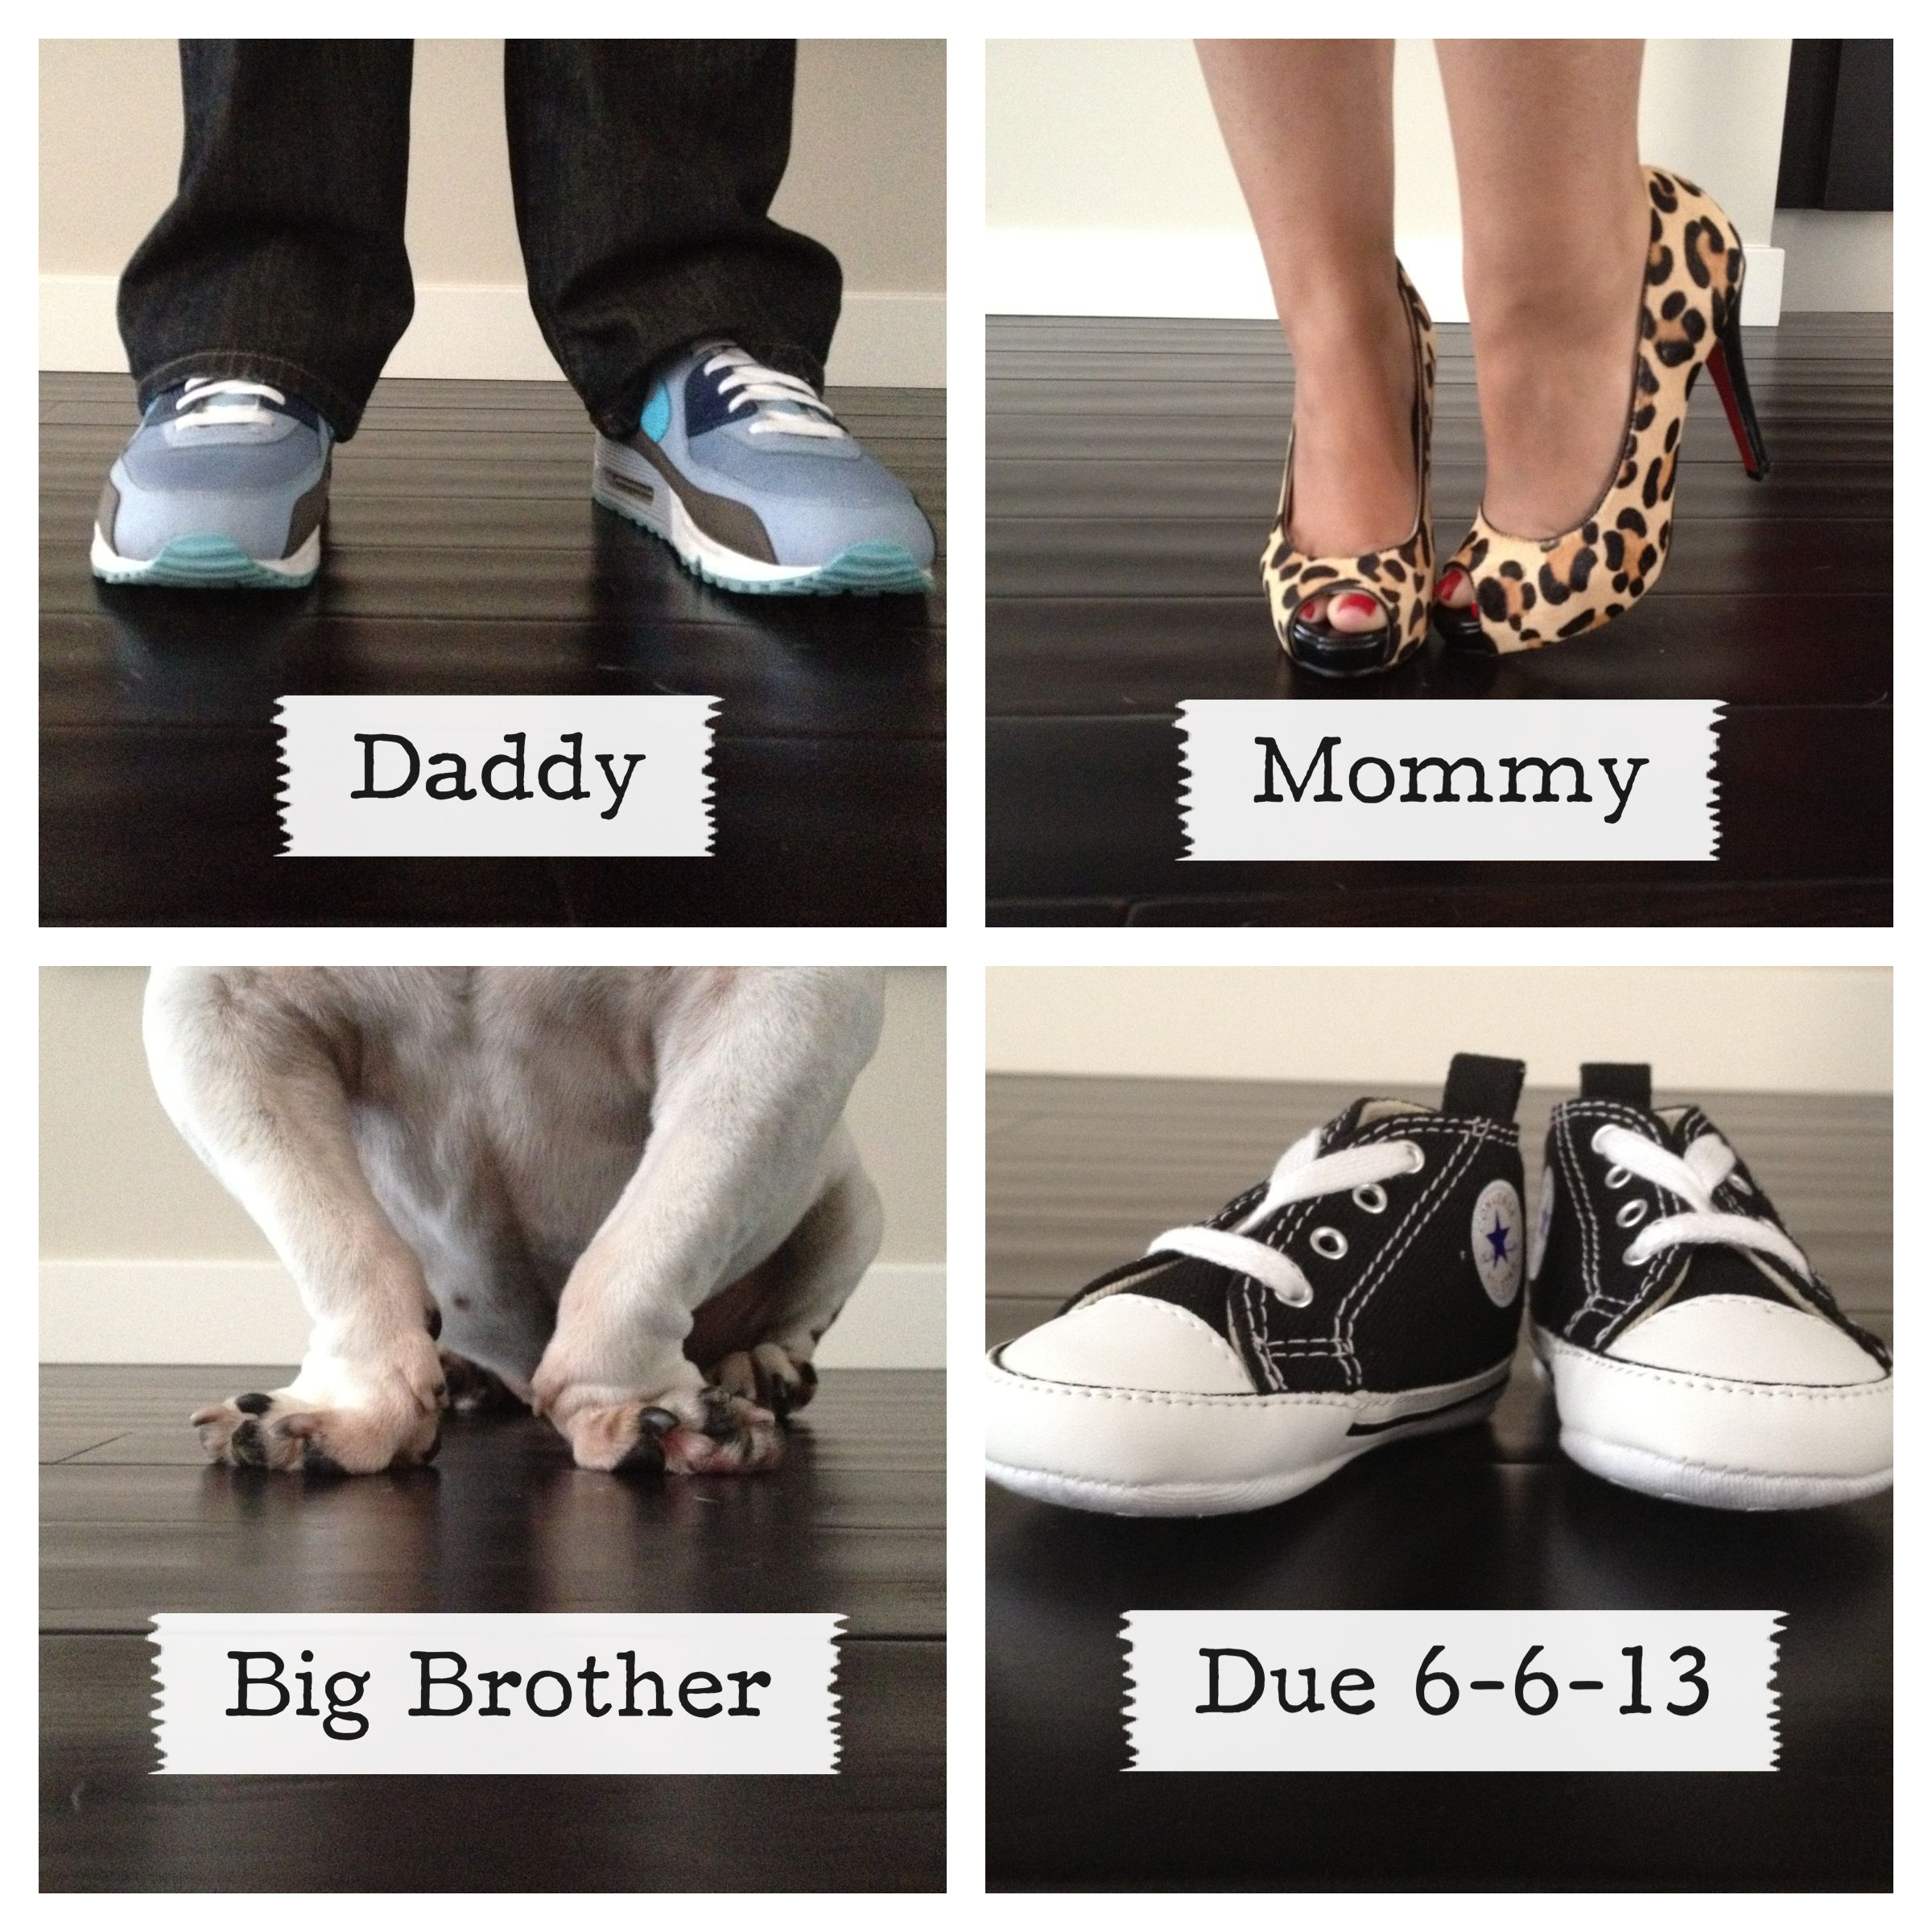 Our Baby Announcement Perfect I love shoes Preggers